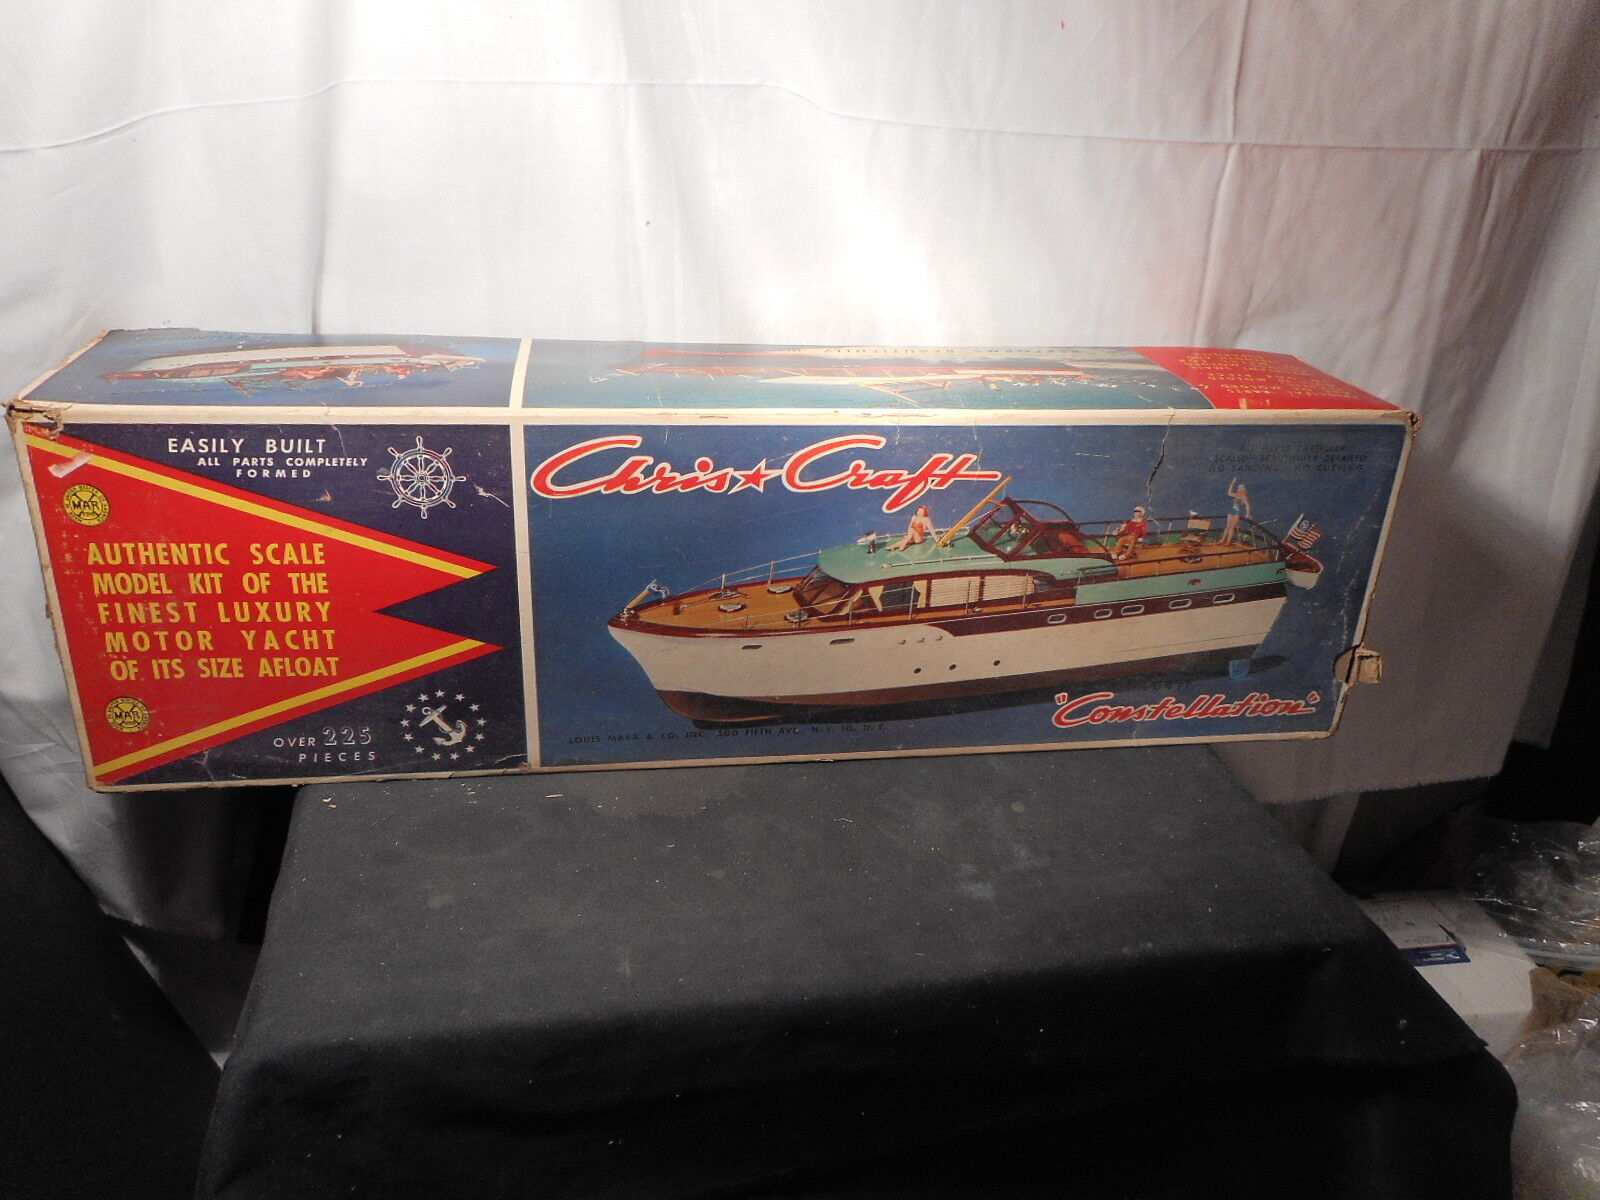 RARE MARX Model Chris Craft Constellation Motor Yacht